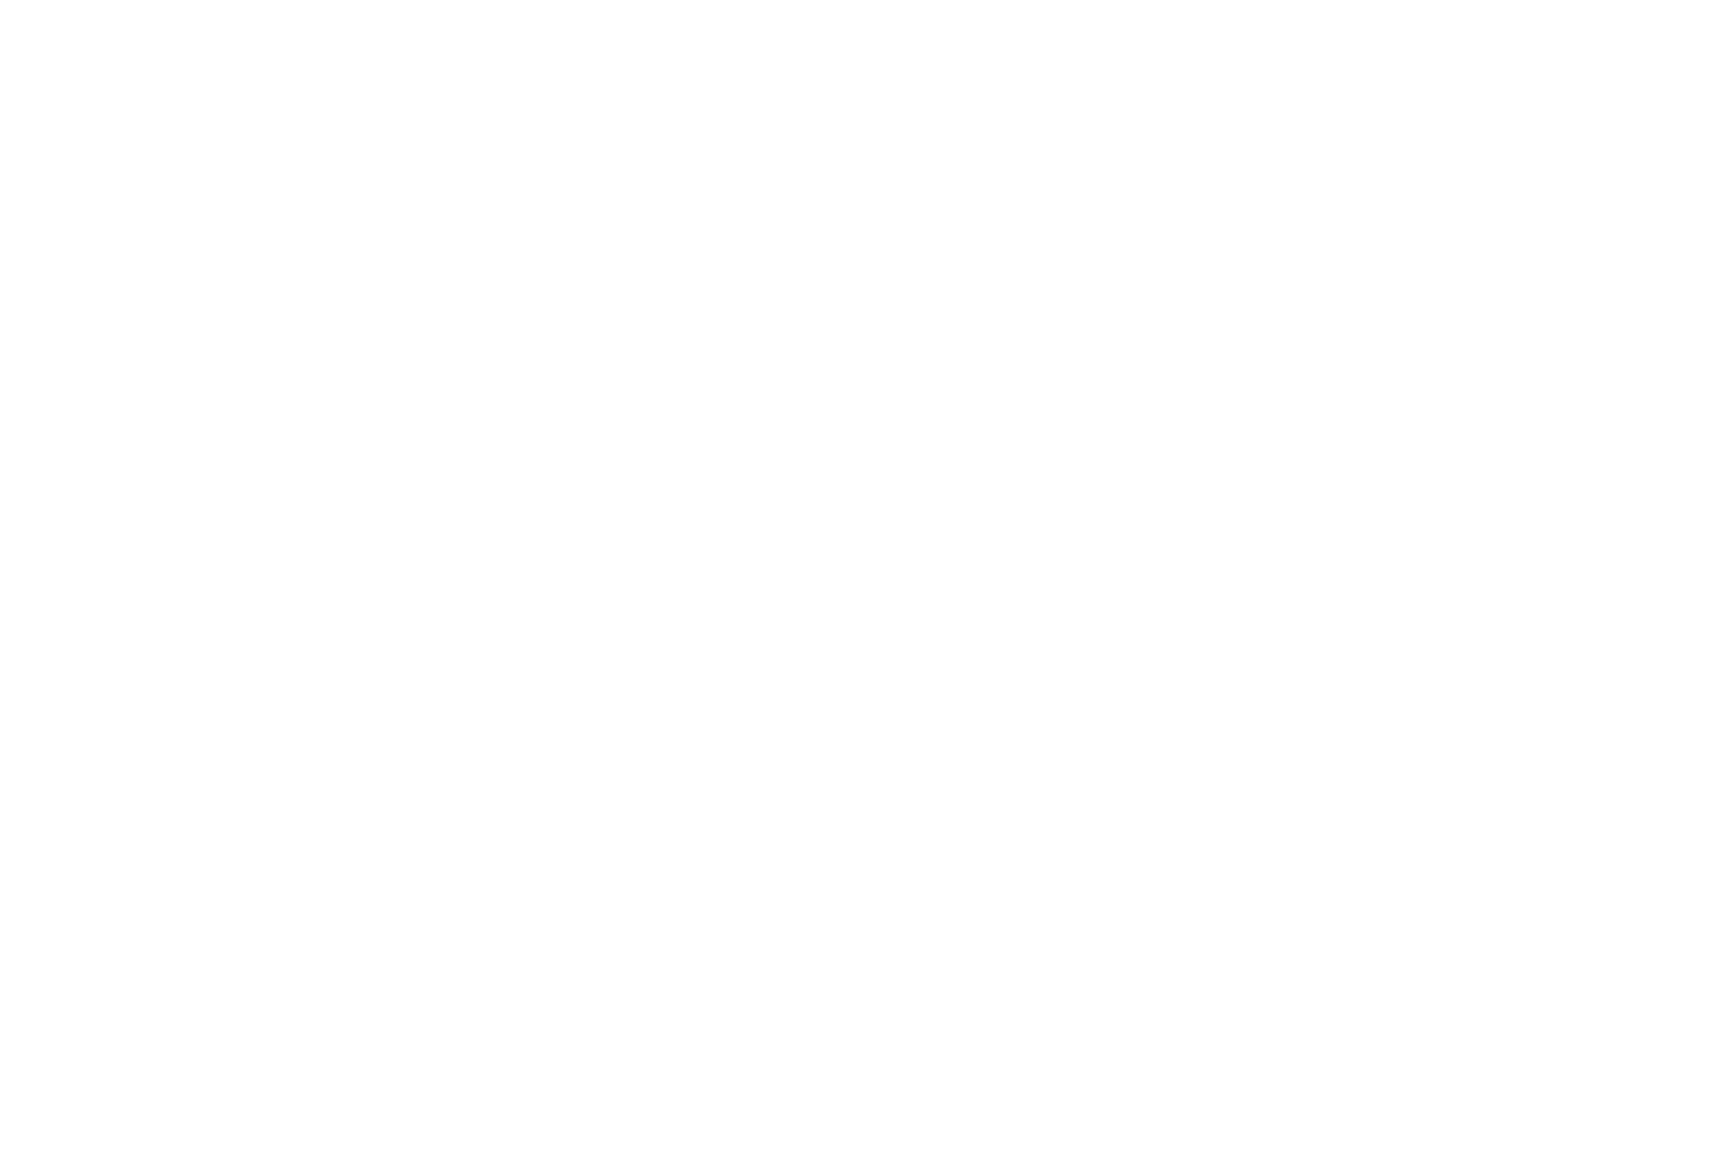 OFFICIAL SELECTION - Women and Minorities in Media Festival - 2014.png